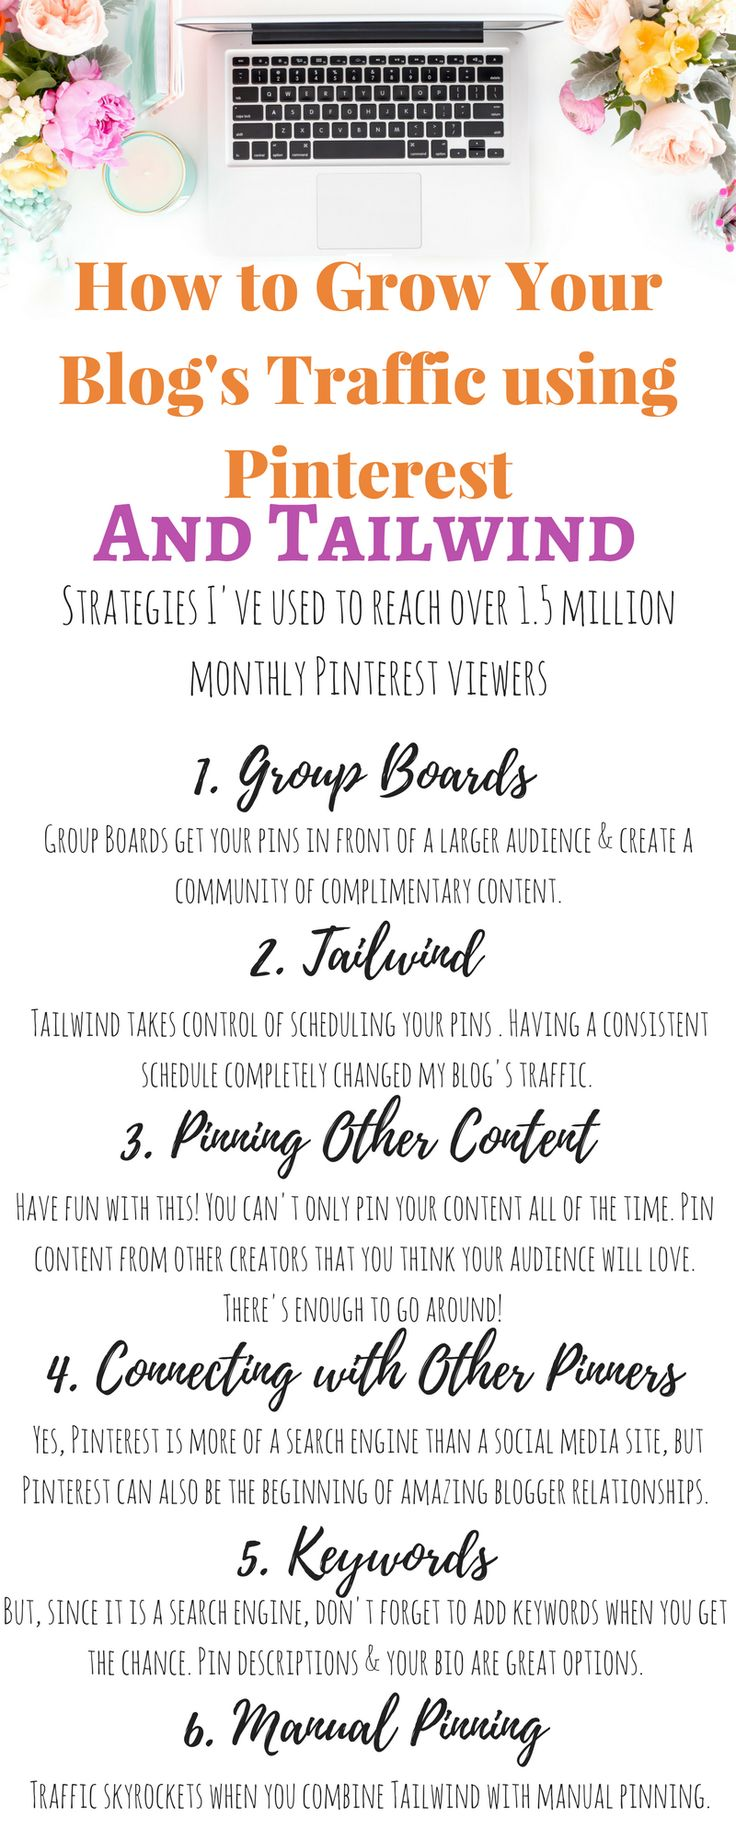 Ready to grow your blog's traffic like crazy? Here are the top 6 tips for using Pinterest to explode your blog's traffic. Pinterest is my favorite way to grow a new blog's traffic. I hope these tips help you find your tribe, get more views, and create viral pins. Click the pin for more details!